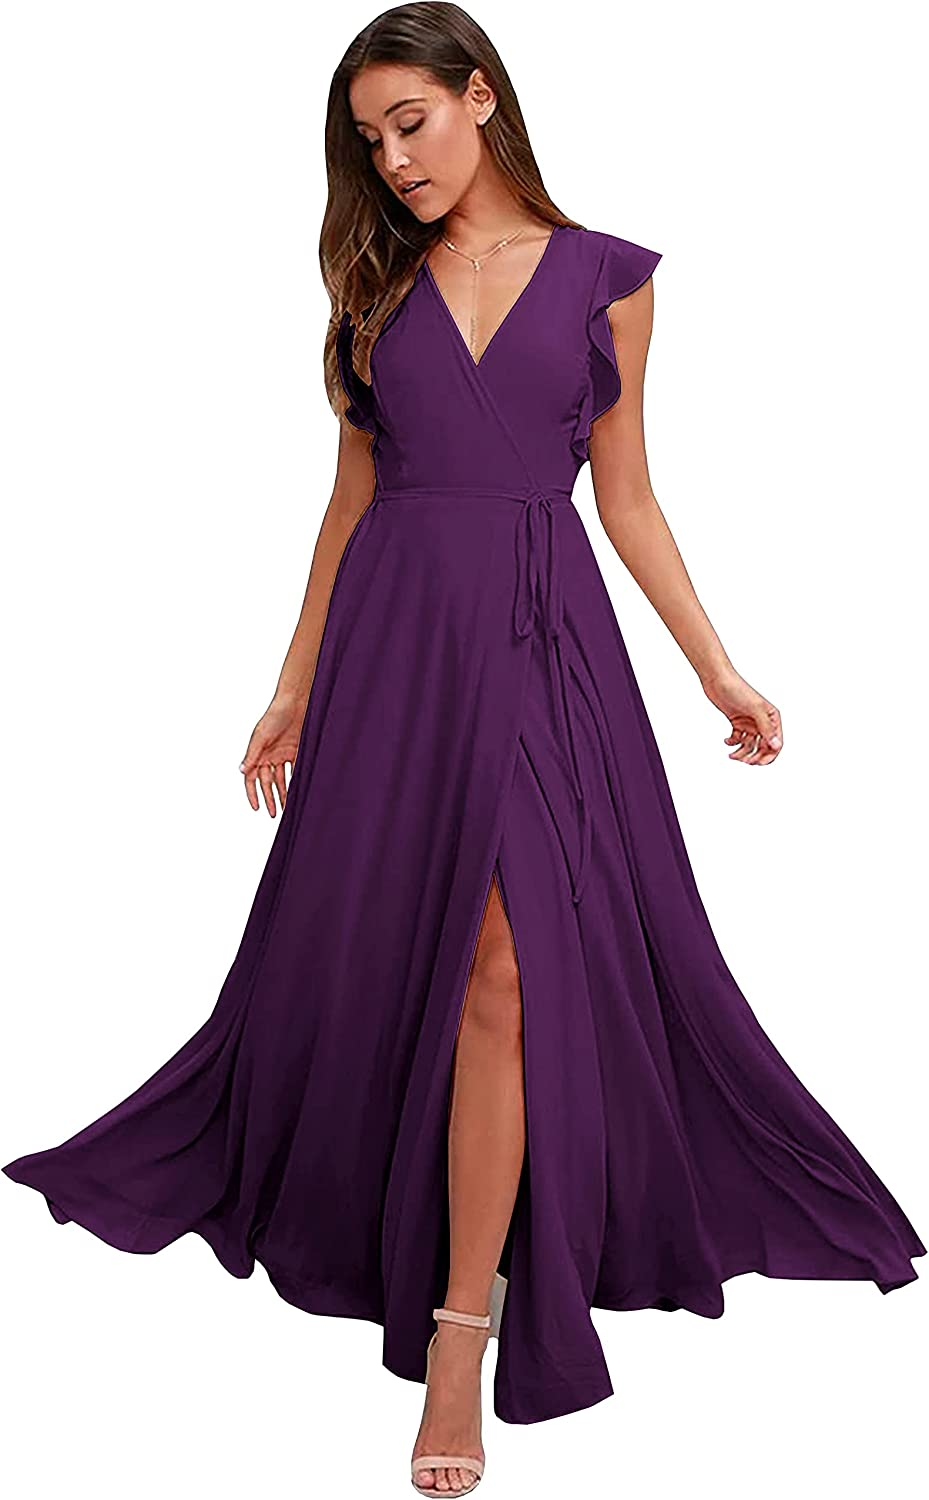 ZMOVQA Women's V Neck Long Bridesmaid Dresses Chiffon Slit A Line Formal Evening Gowns with Ruffles Sleeves